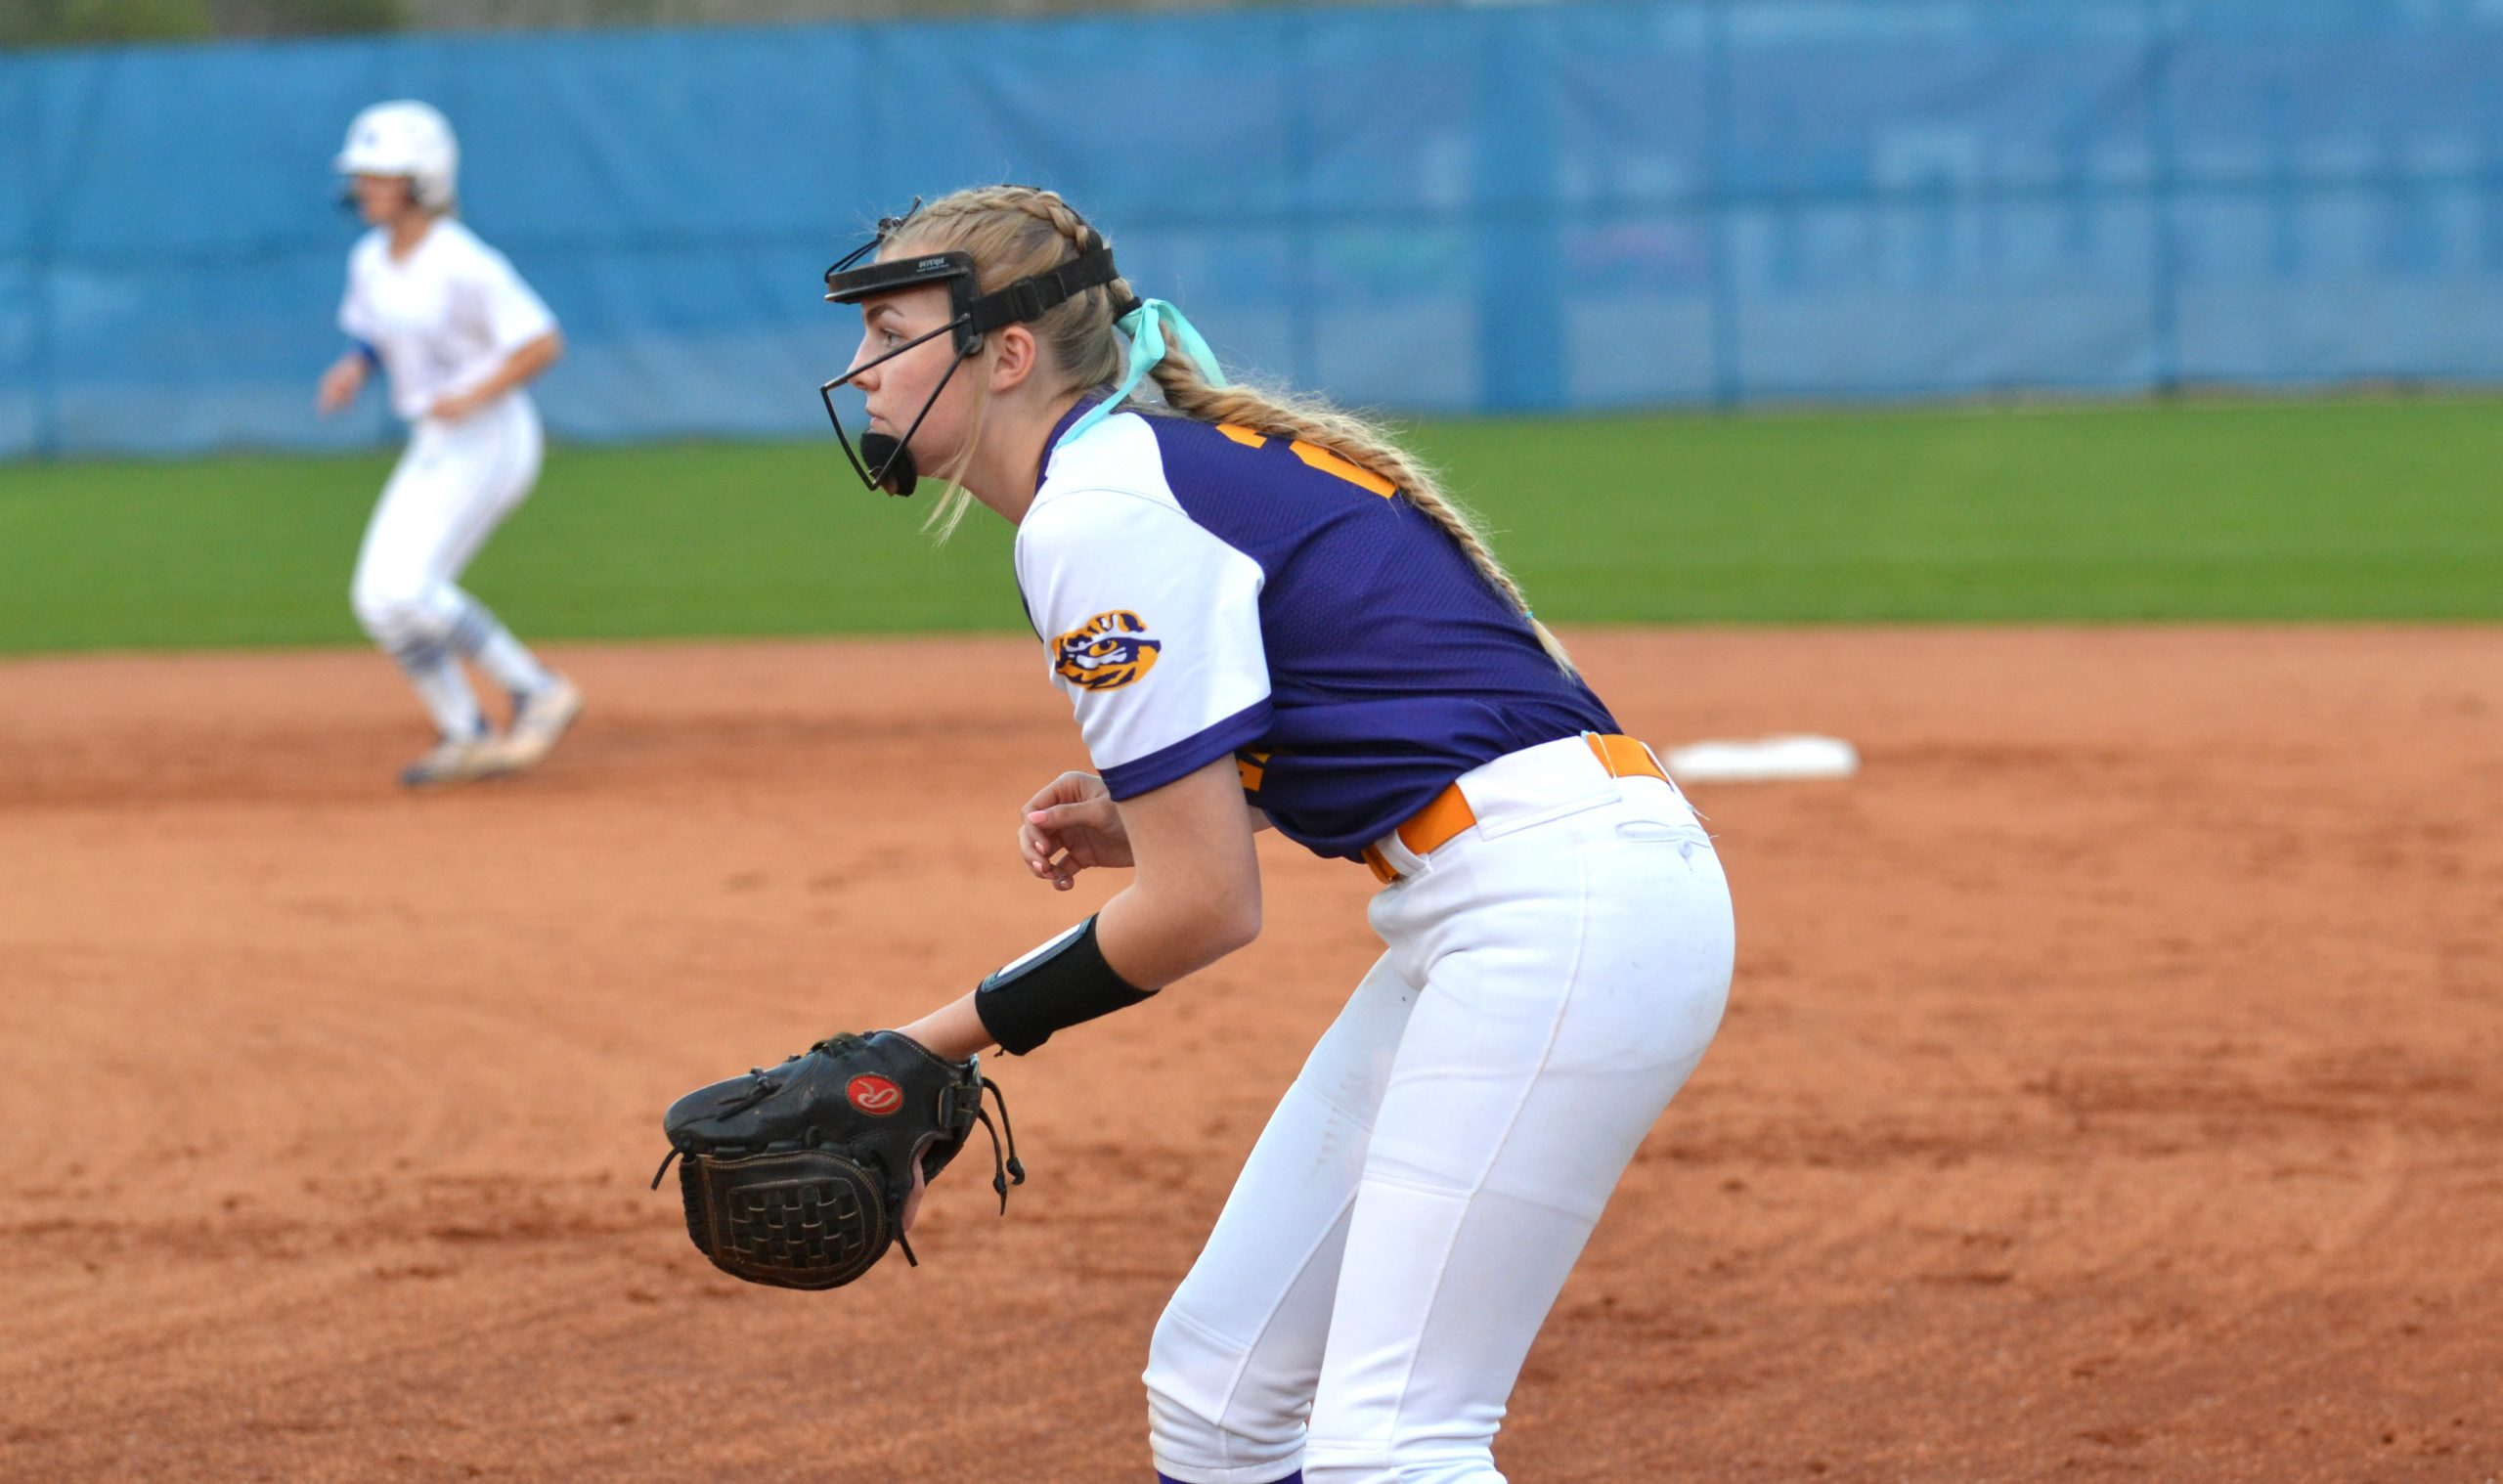 SOFTBALL ROUNDUP: Bullington goes off as Tigers top Southside; Hewitt falls to Spain Park